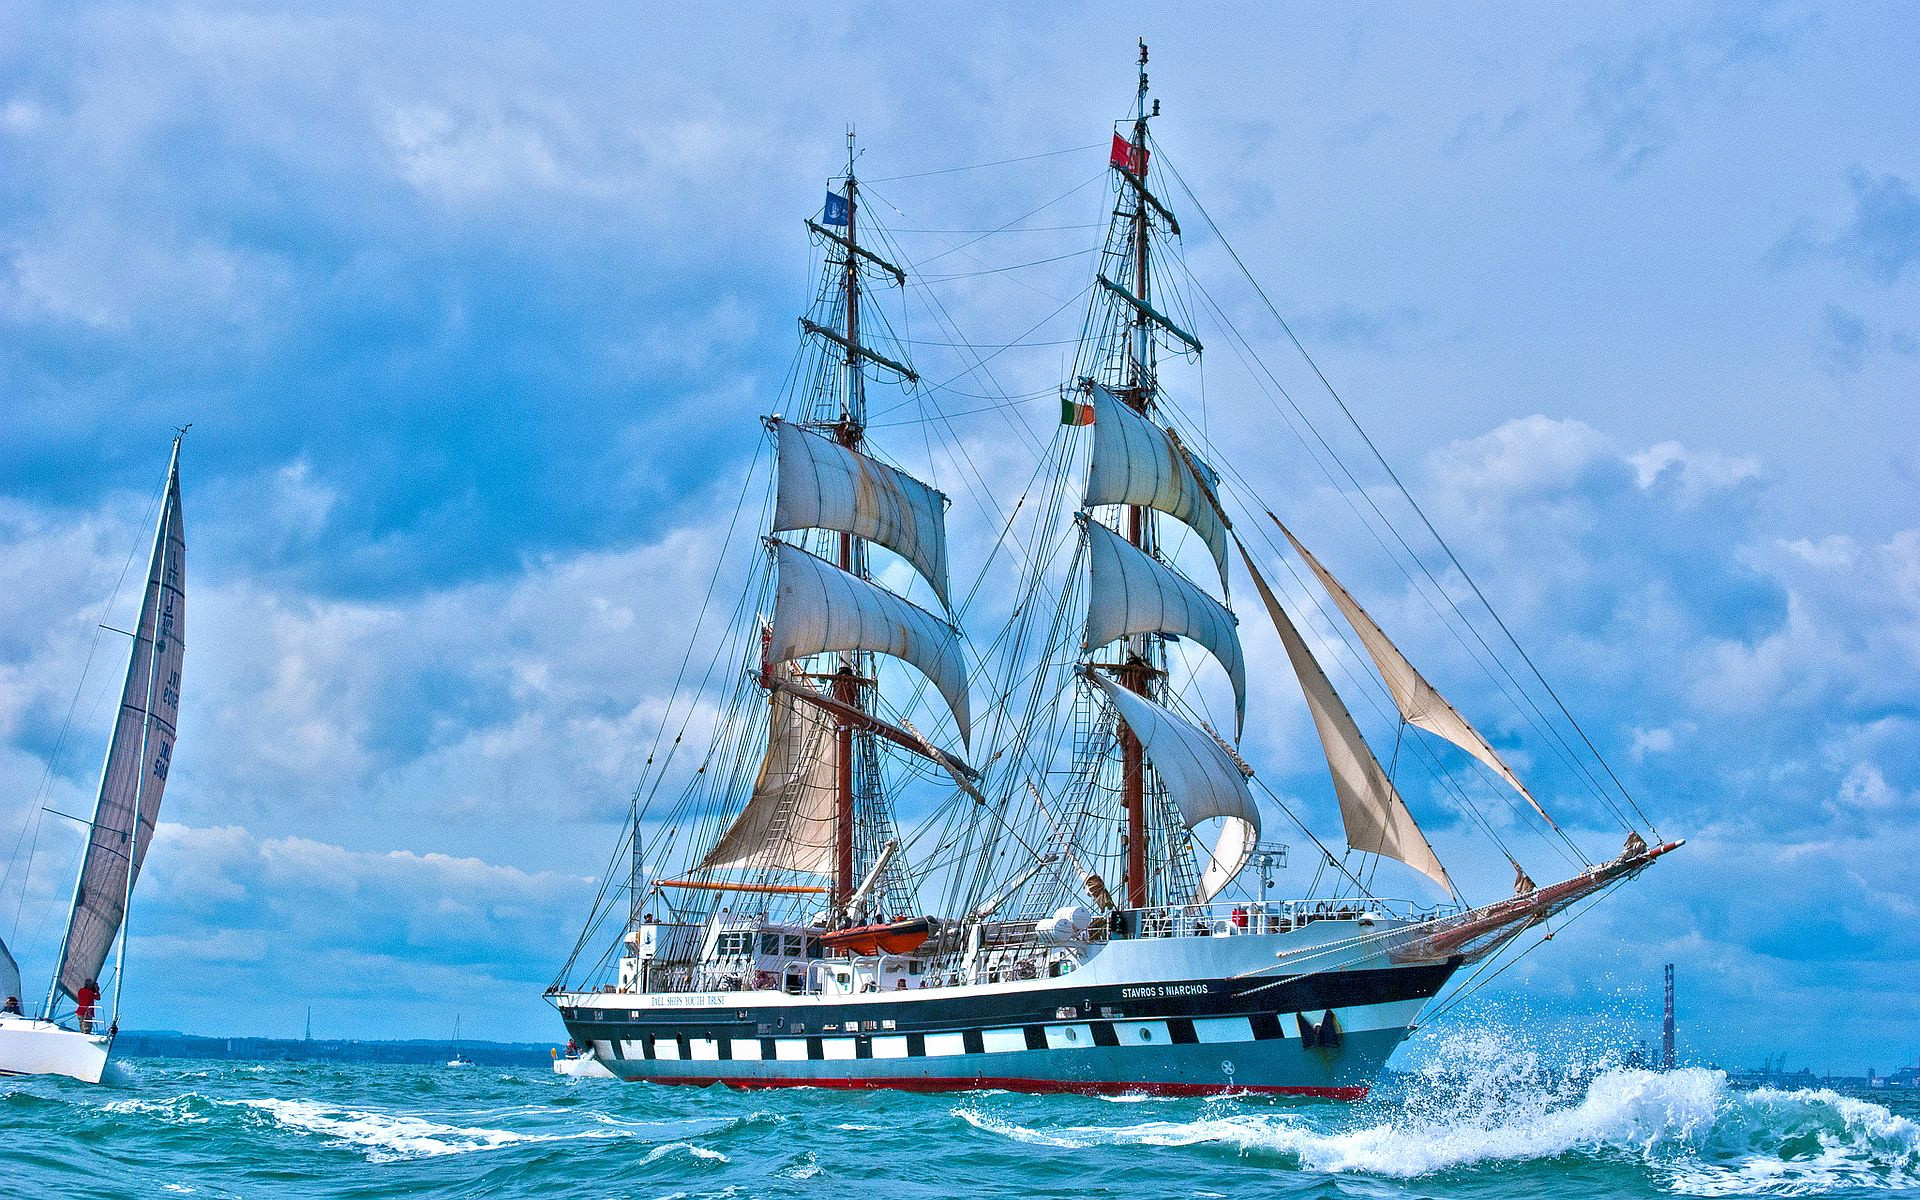 Res: 1920x1200, Nautical Wallpaper New Sailboat Stavros Niarchos Boat Hd Wallpapers  Pinterest